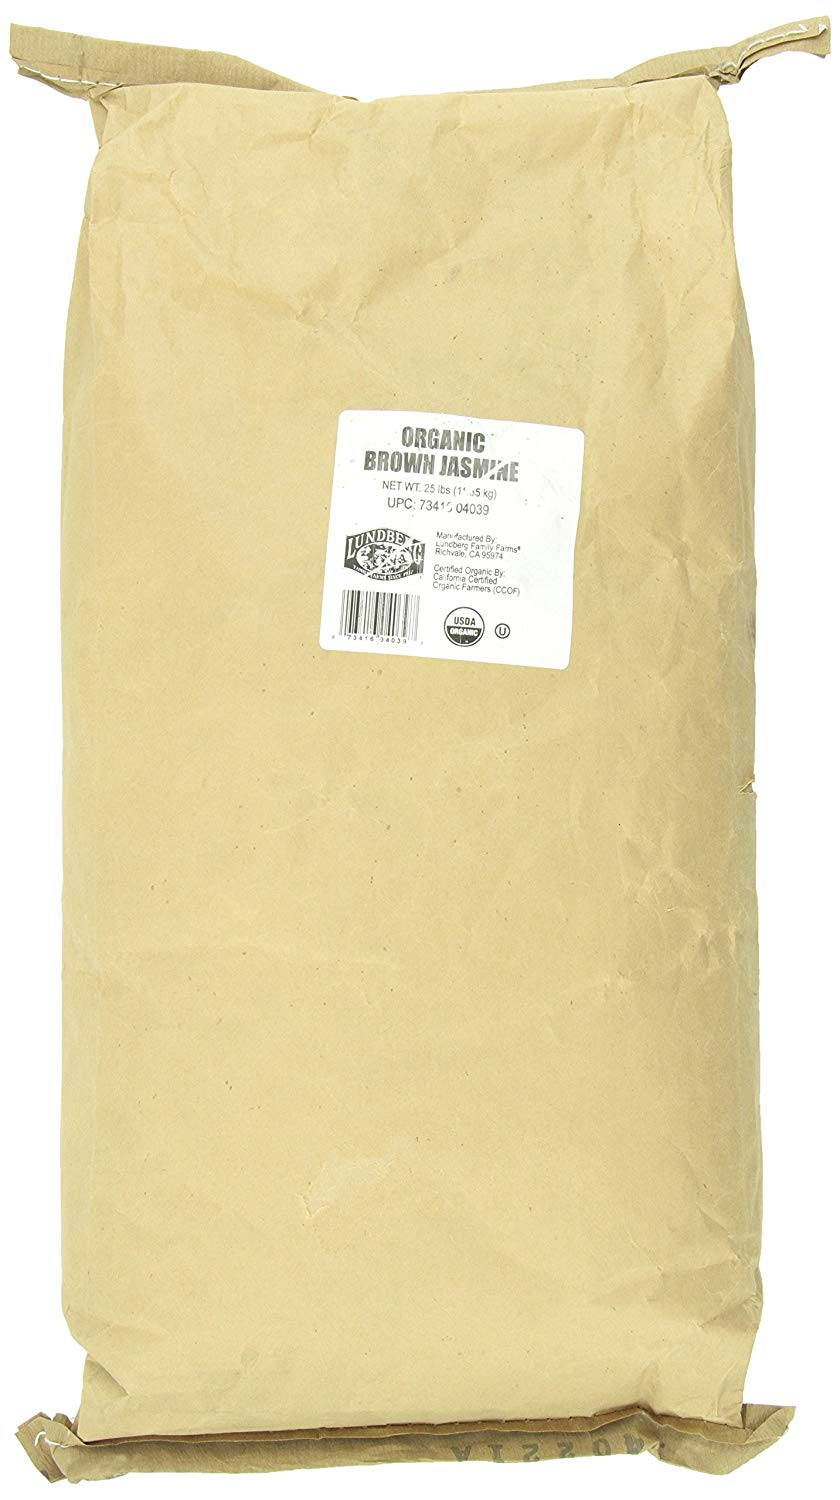 Lundberg Family Farms Organic Brown Jasmine Rice, 25 lb